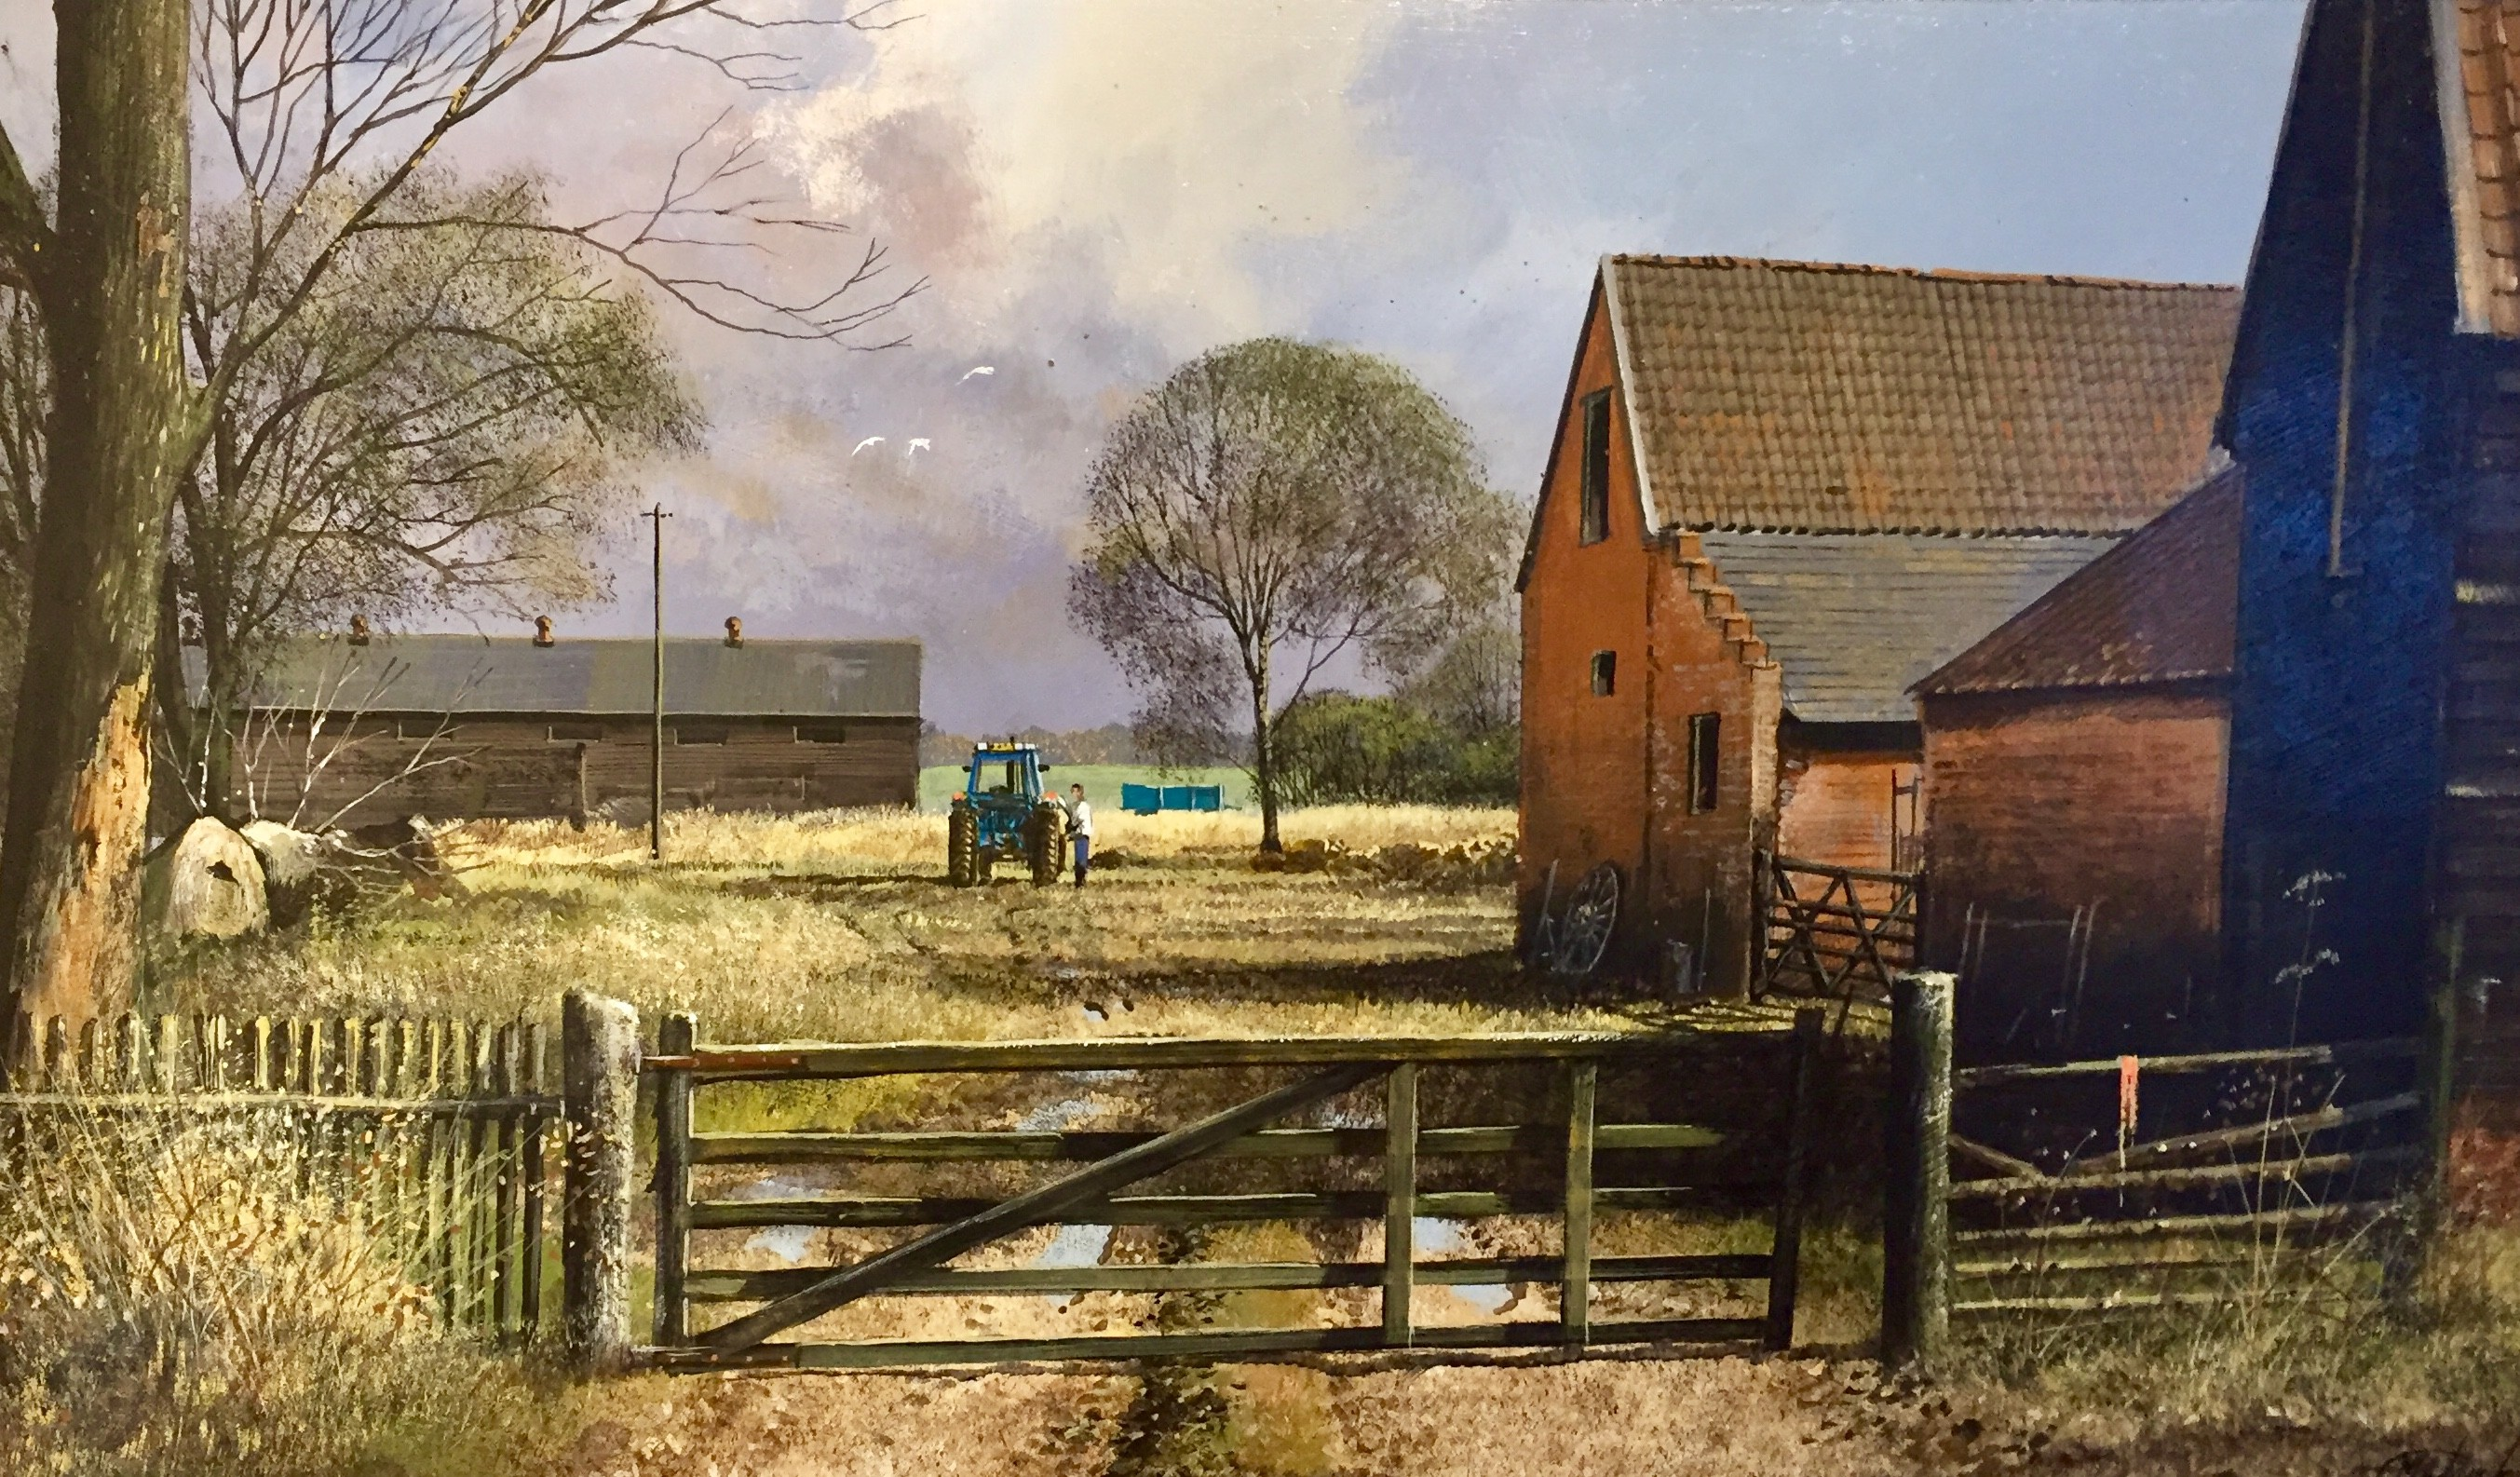 In From The Fields, Farm scene with Tractor - SOLD